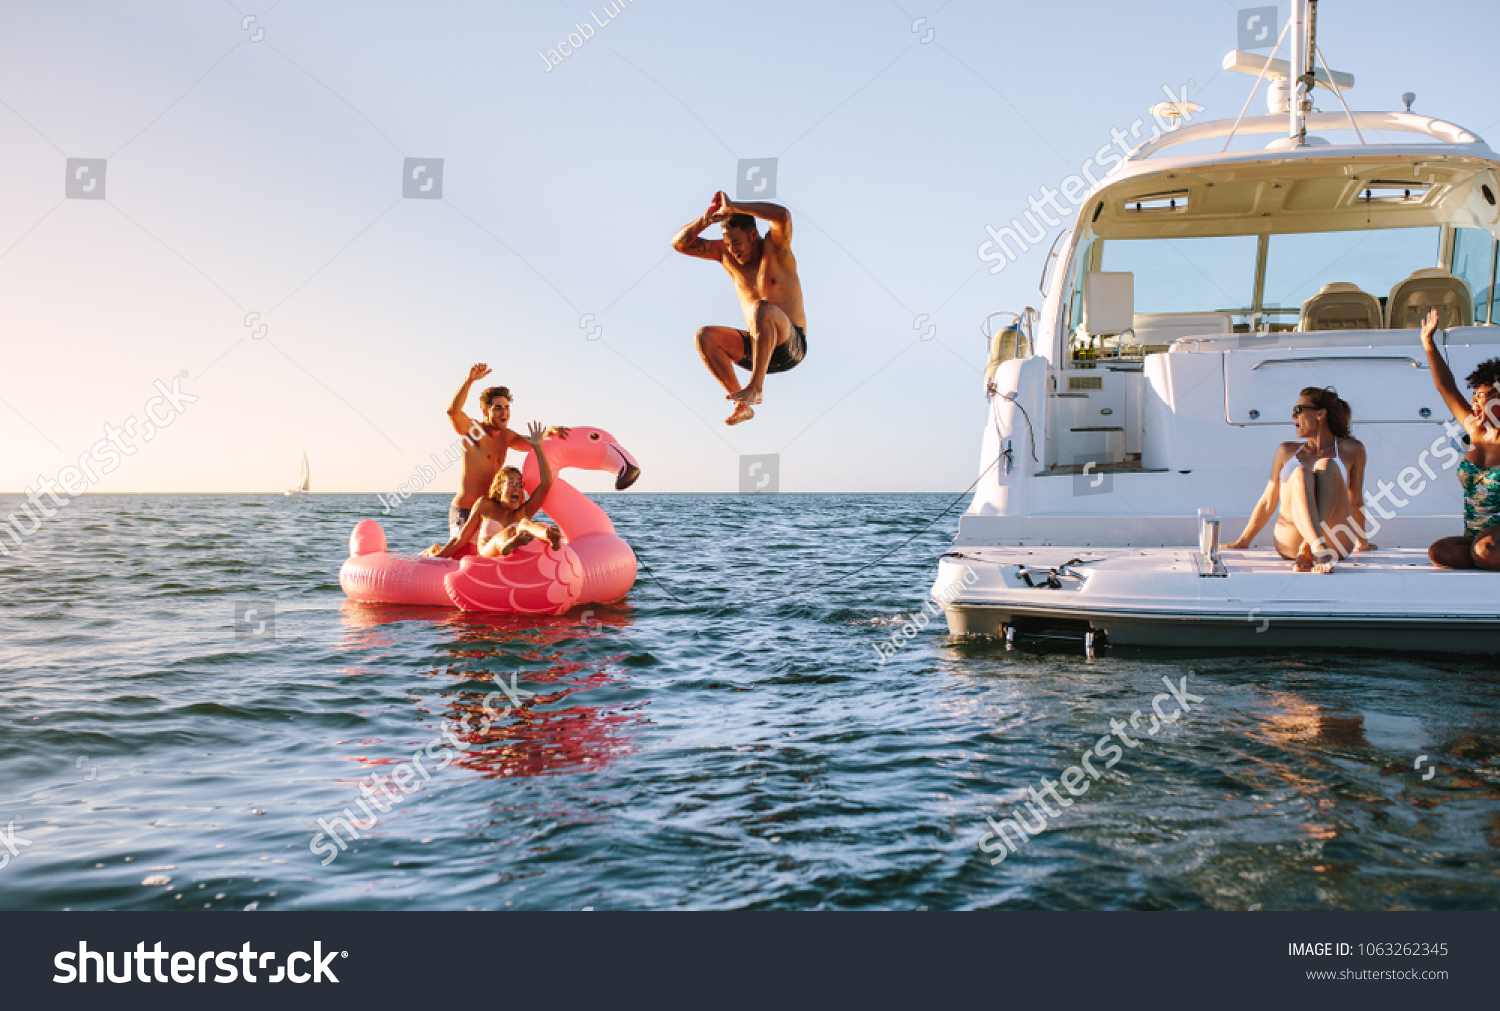 Man diving in the sea with friends sitting on yacht and inflatable toy. Group of friends enjoying a summer day on a inflatable toy and yacht. #1063262345